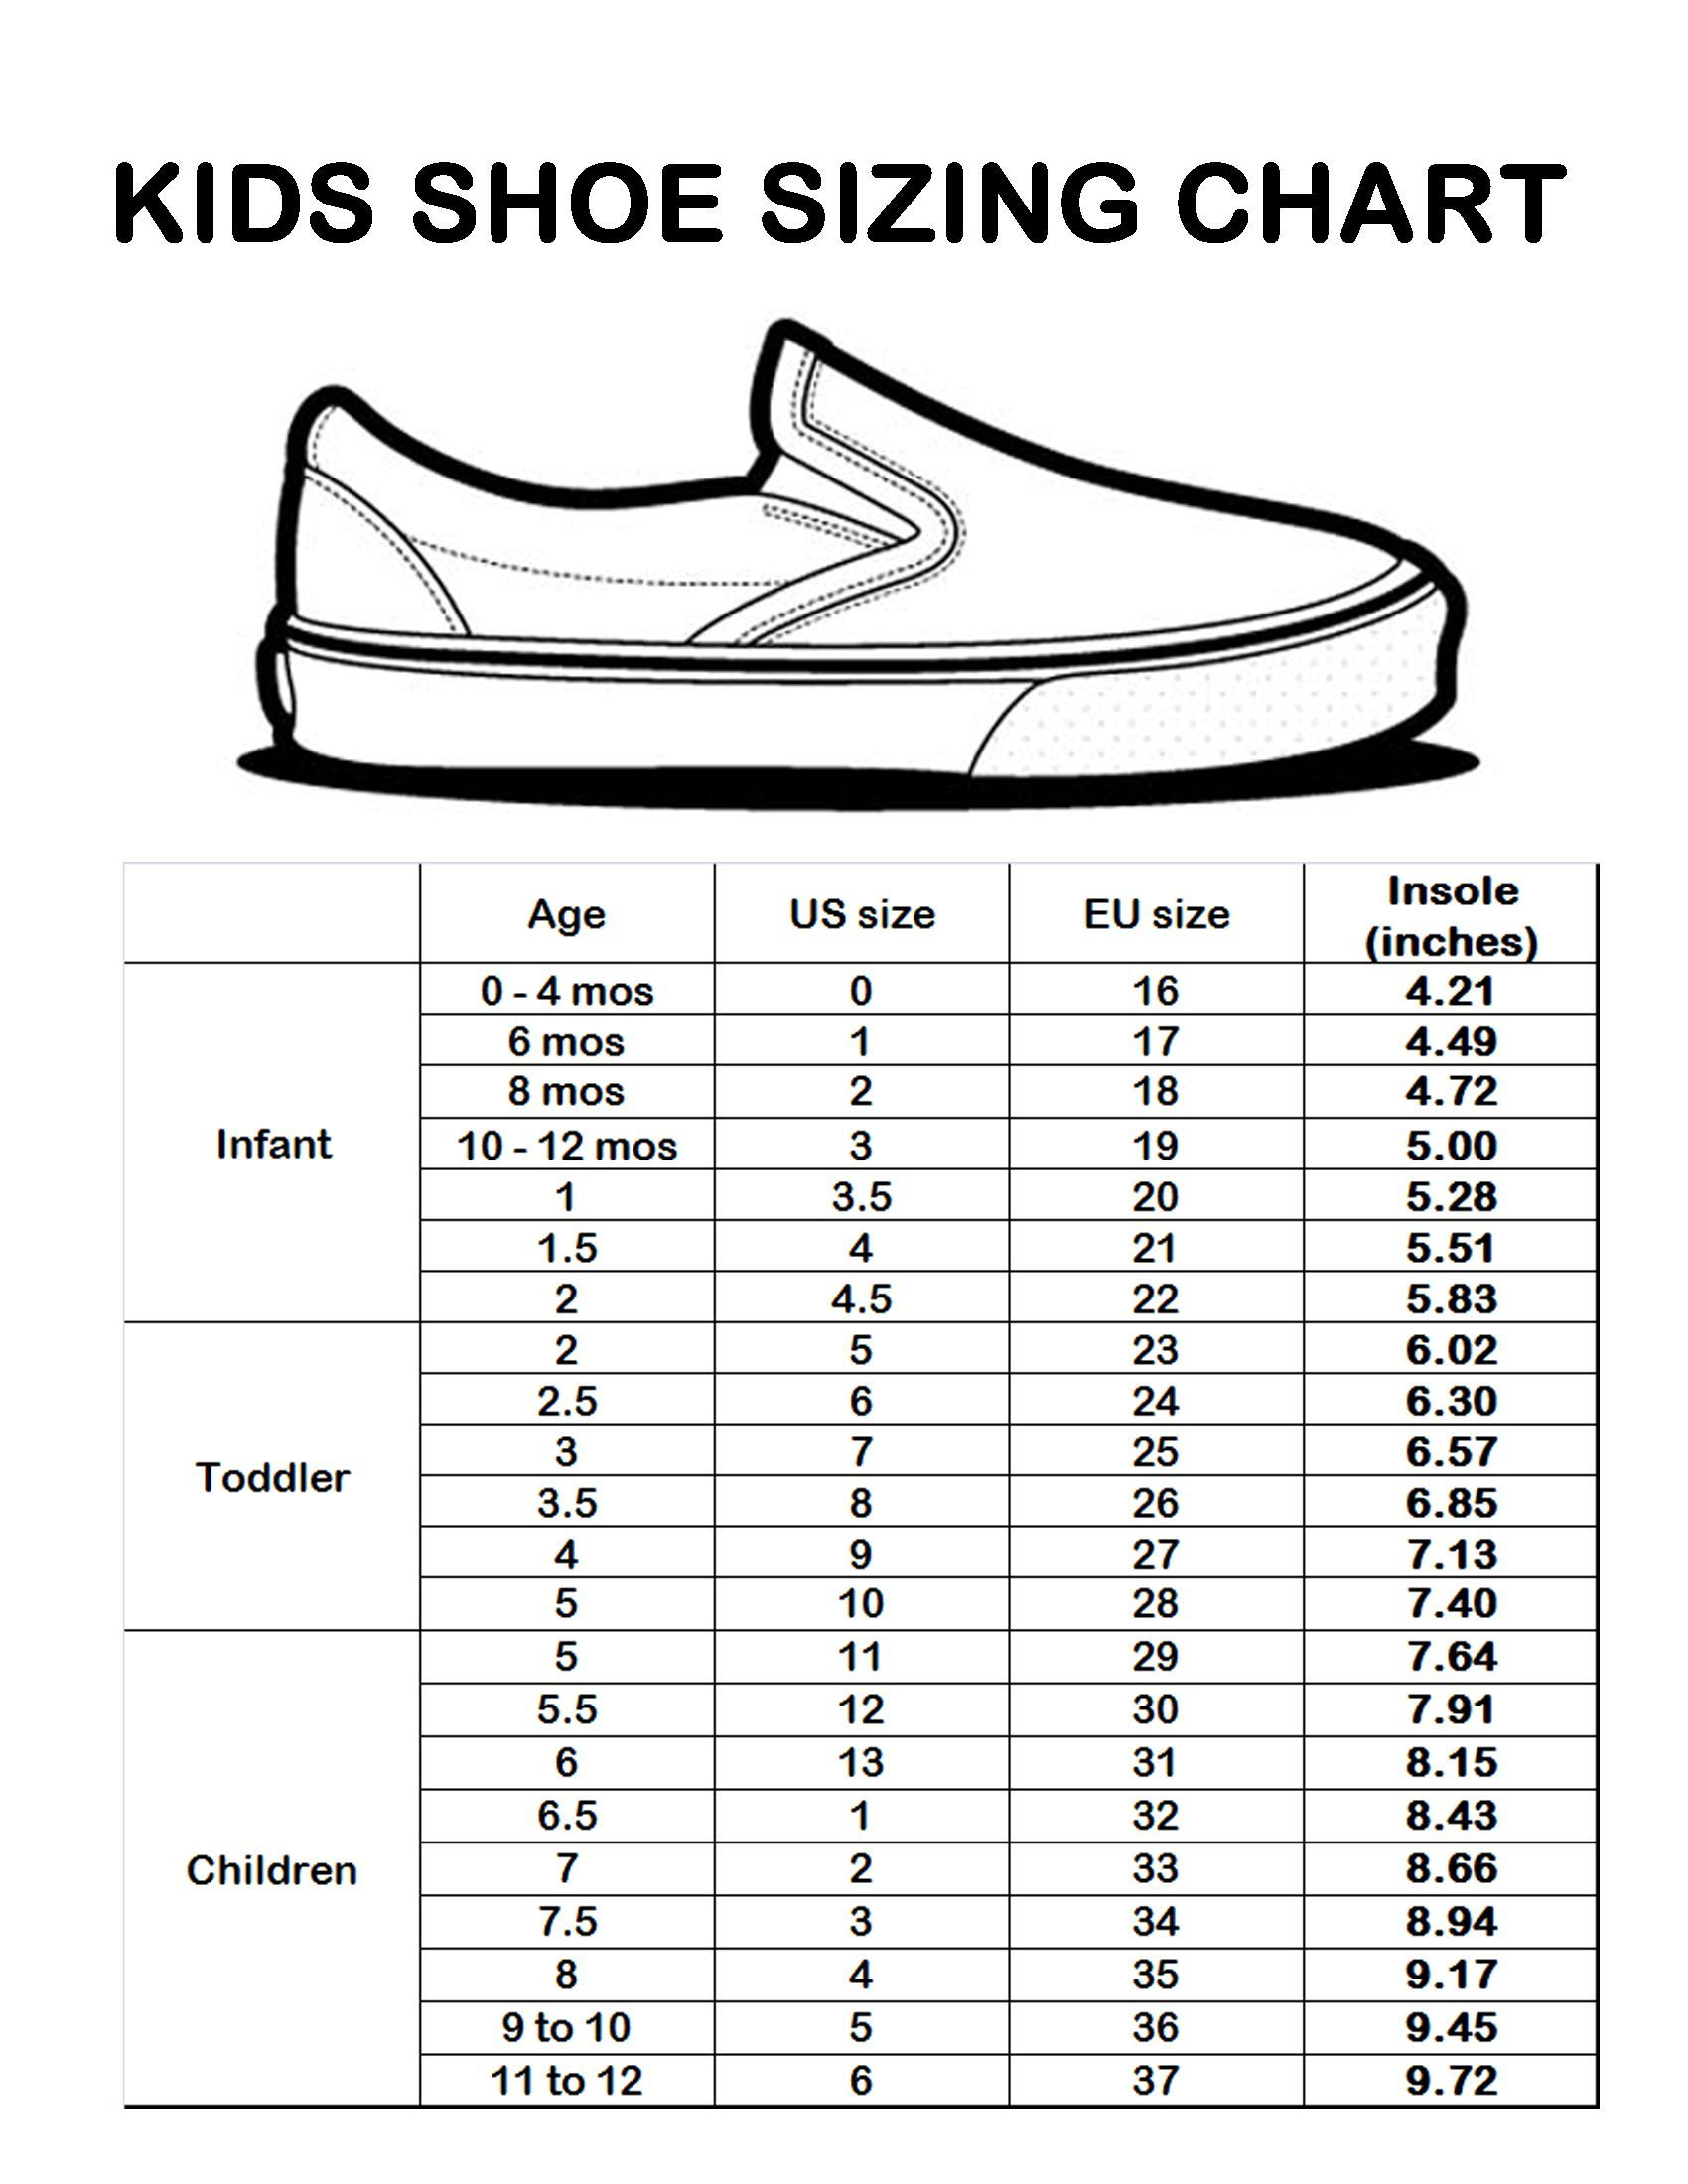 108 Reference Of Baby Shoe Sizes 13 Cm In 2020 Shoe Size Chart Kids Baby Shoe Size Chart Baby Shoe Sizes